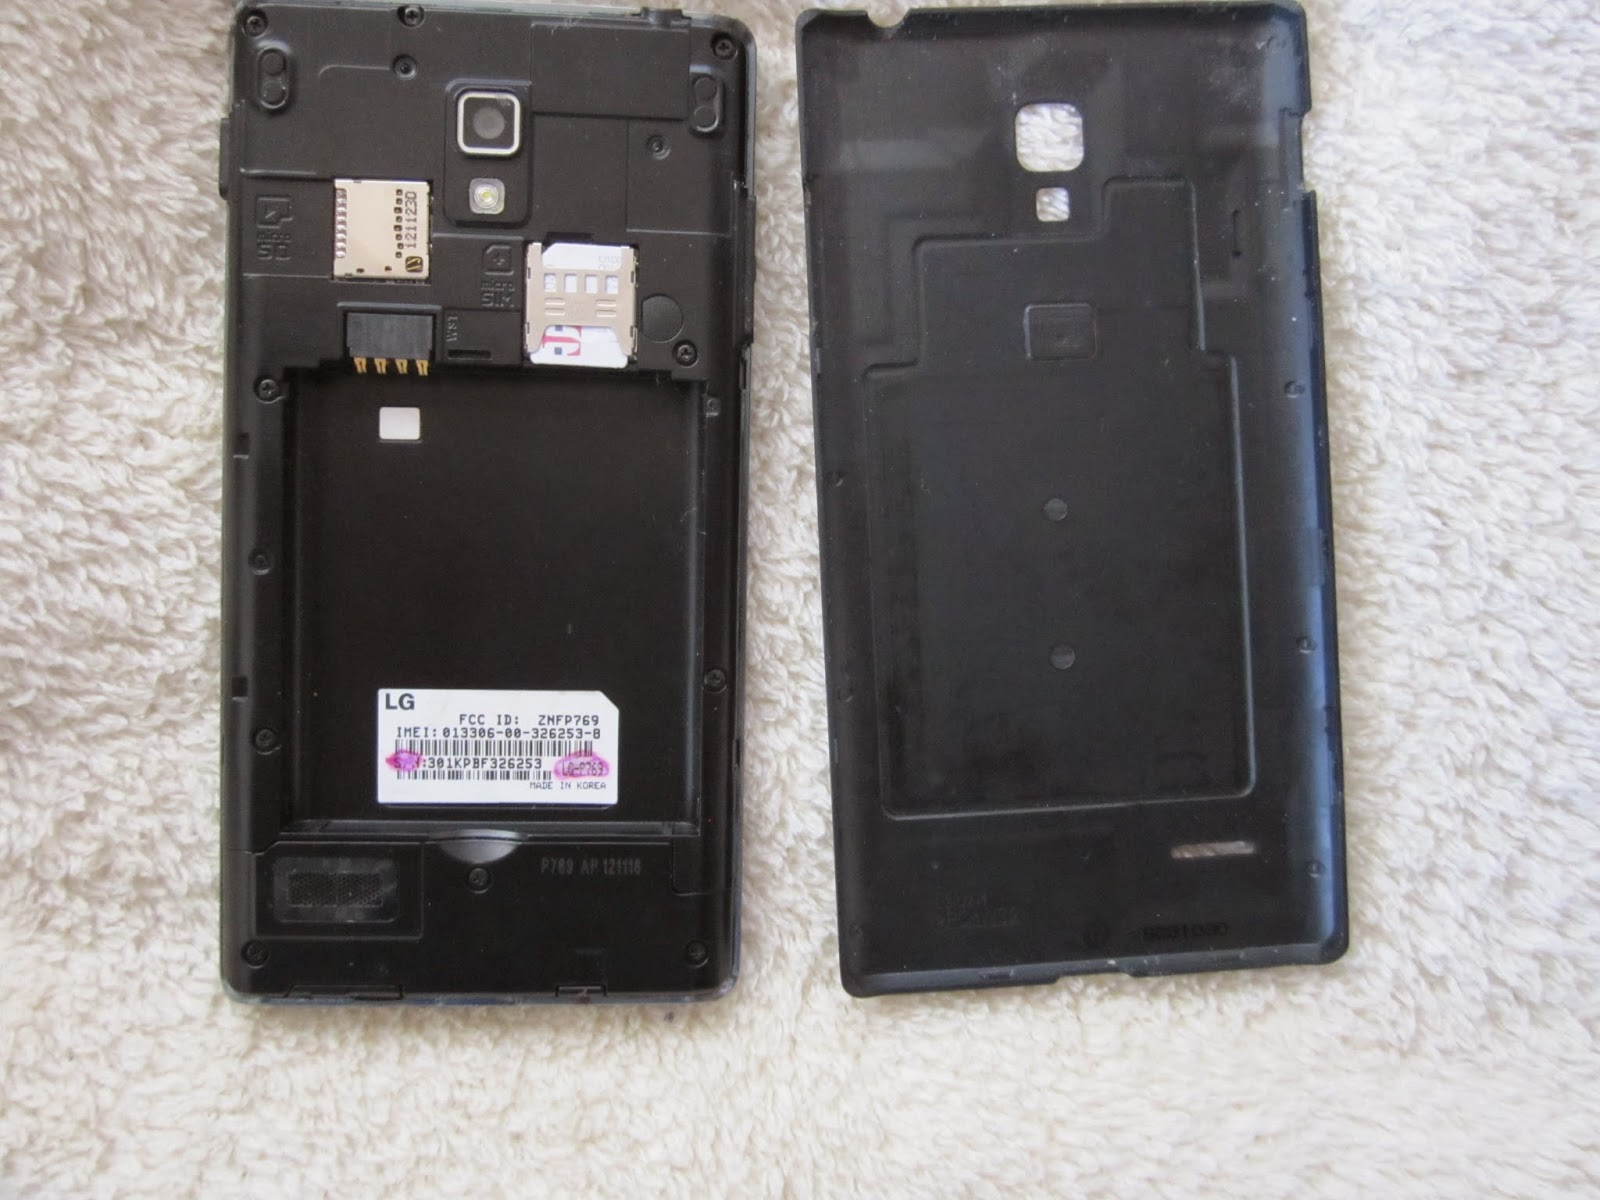 LG Optimus L9 P769 (T-Mobile)